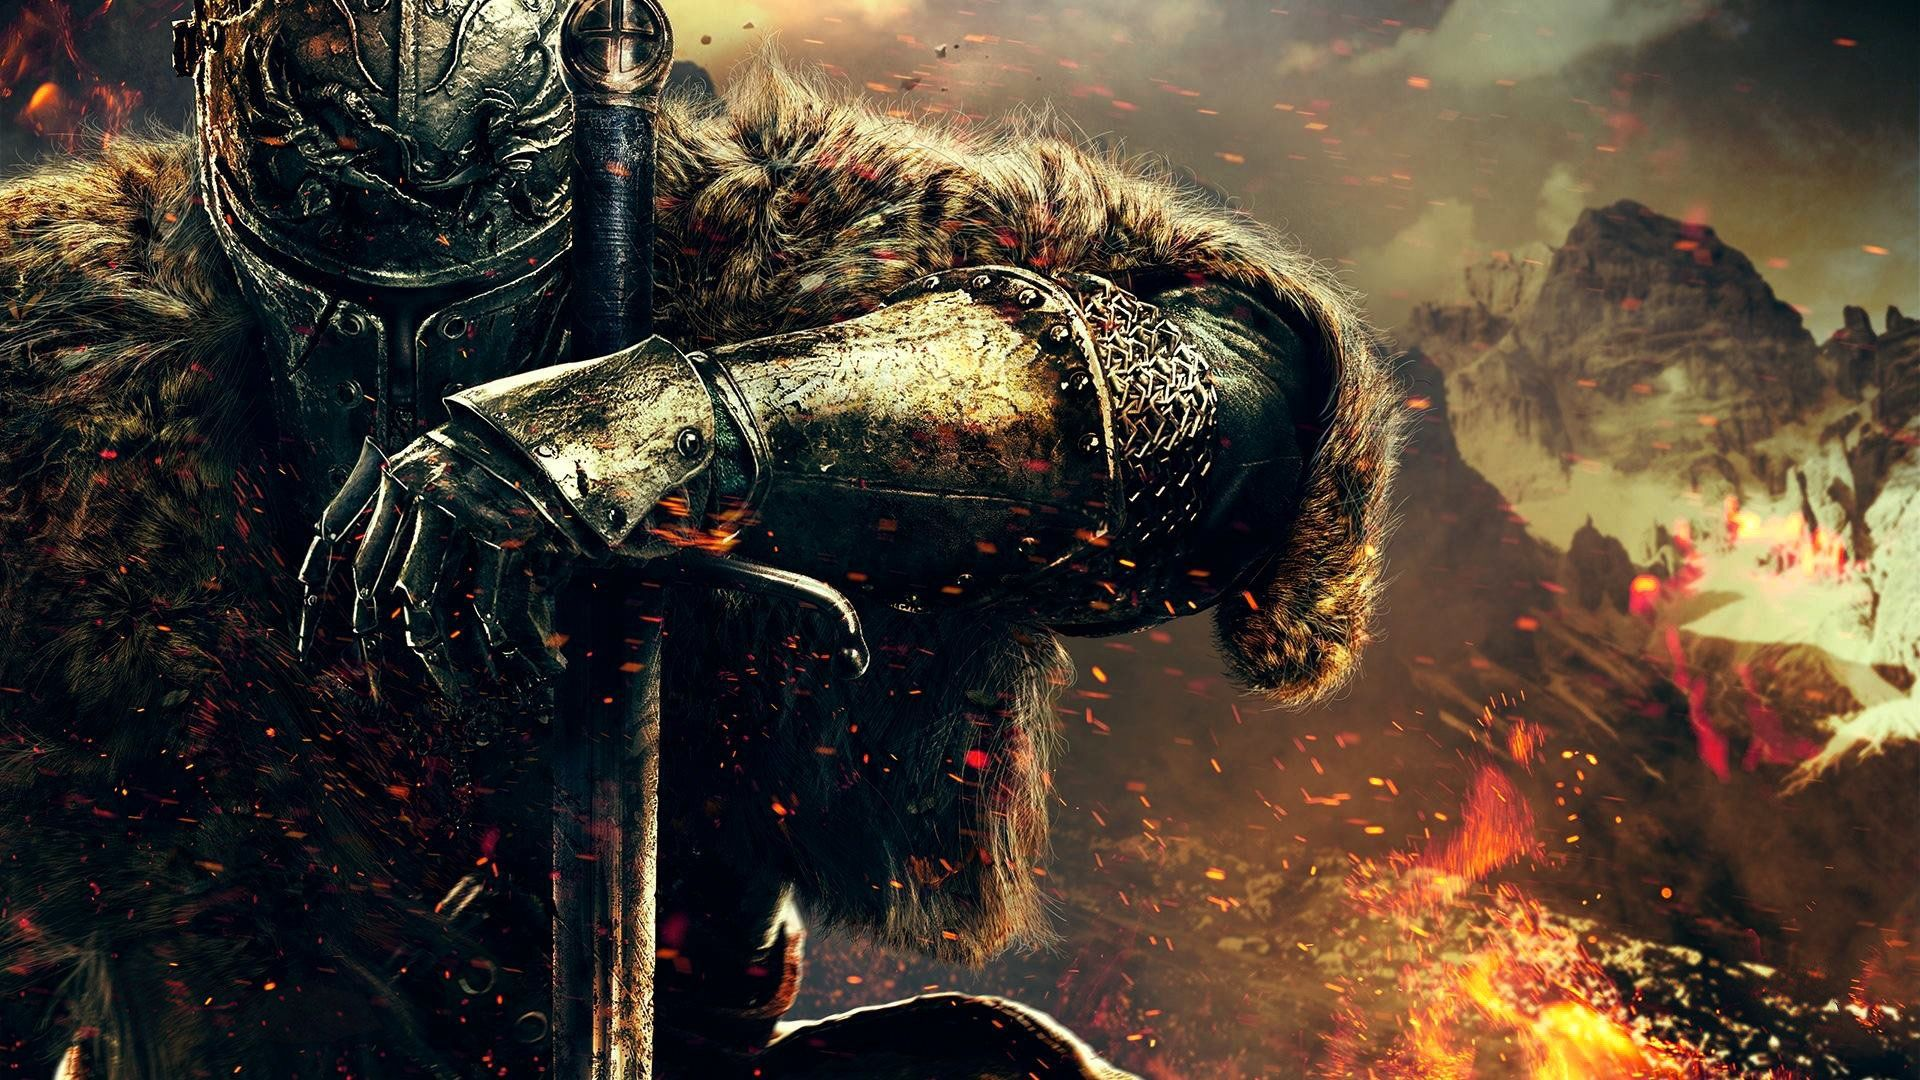 Dark Souls 3 Hd Wallpaper: Dark Souls & Blood Born